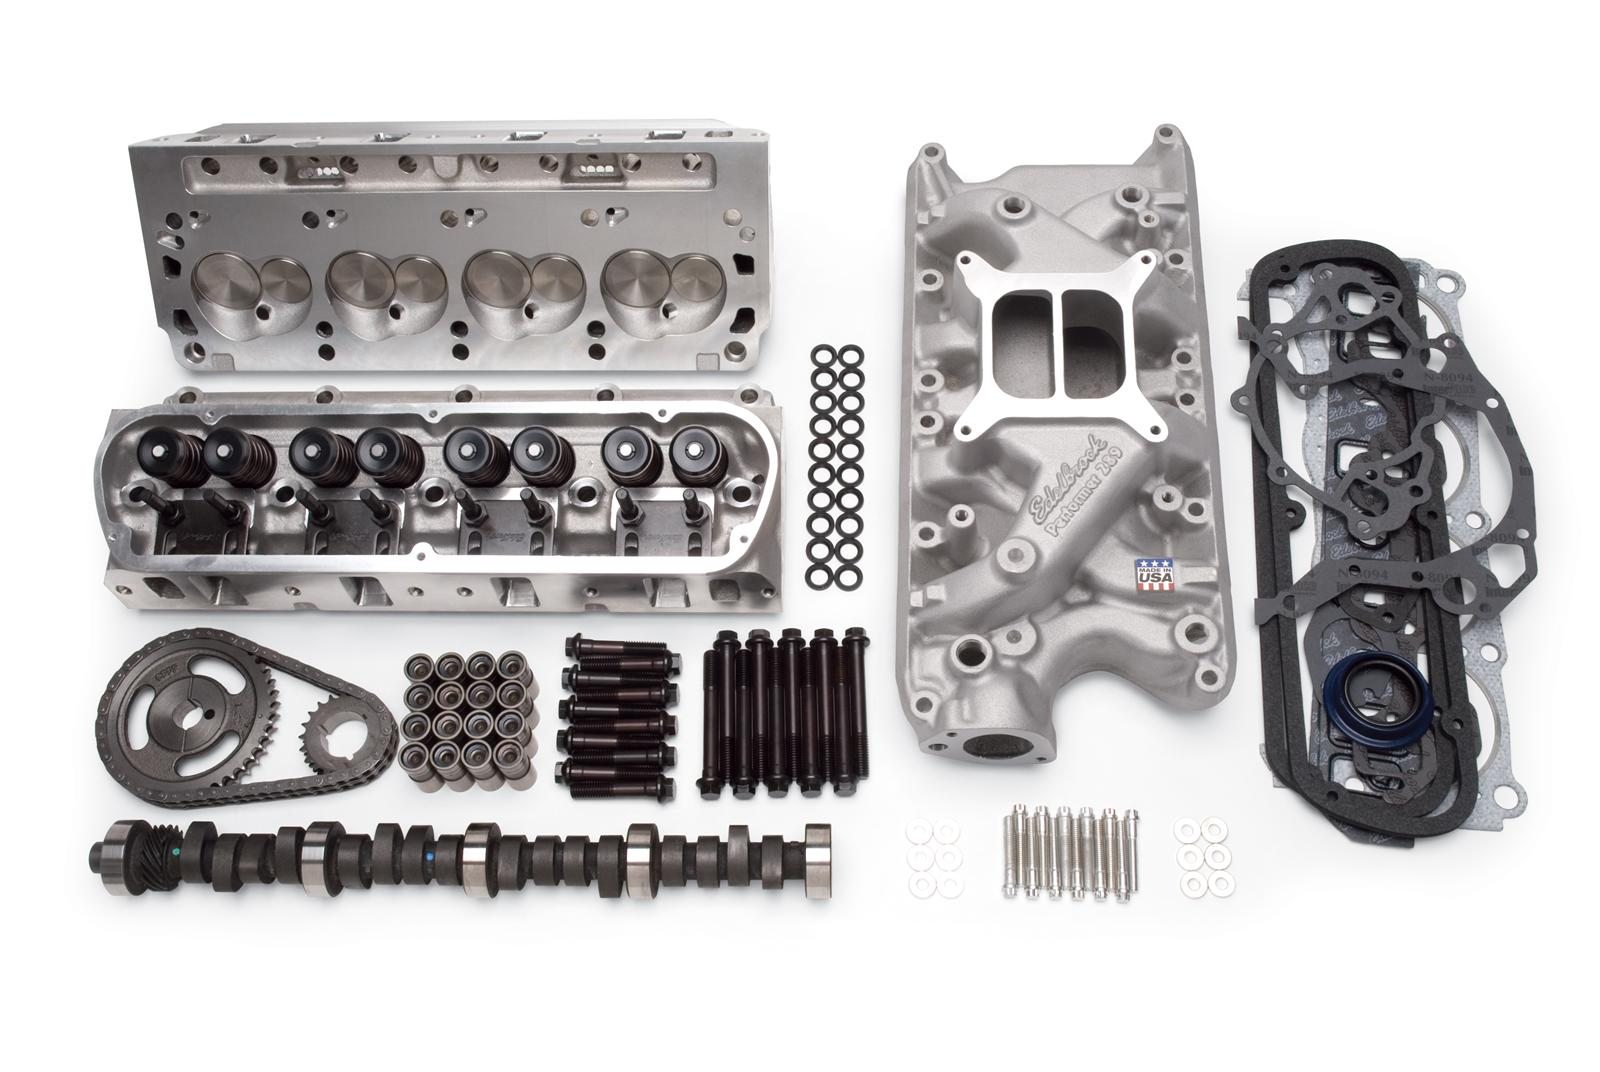 How to Choose Cylinder Heads: 6 Mistakes to Avoid